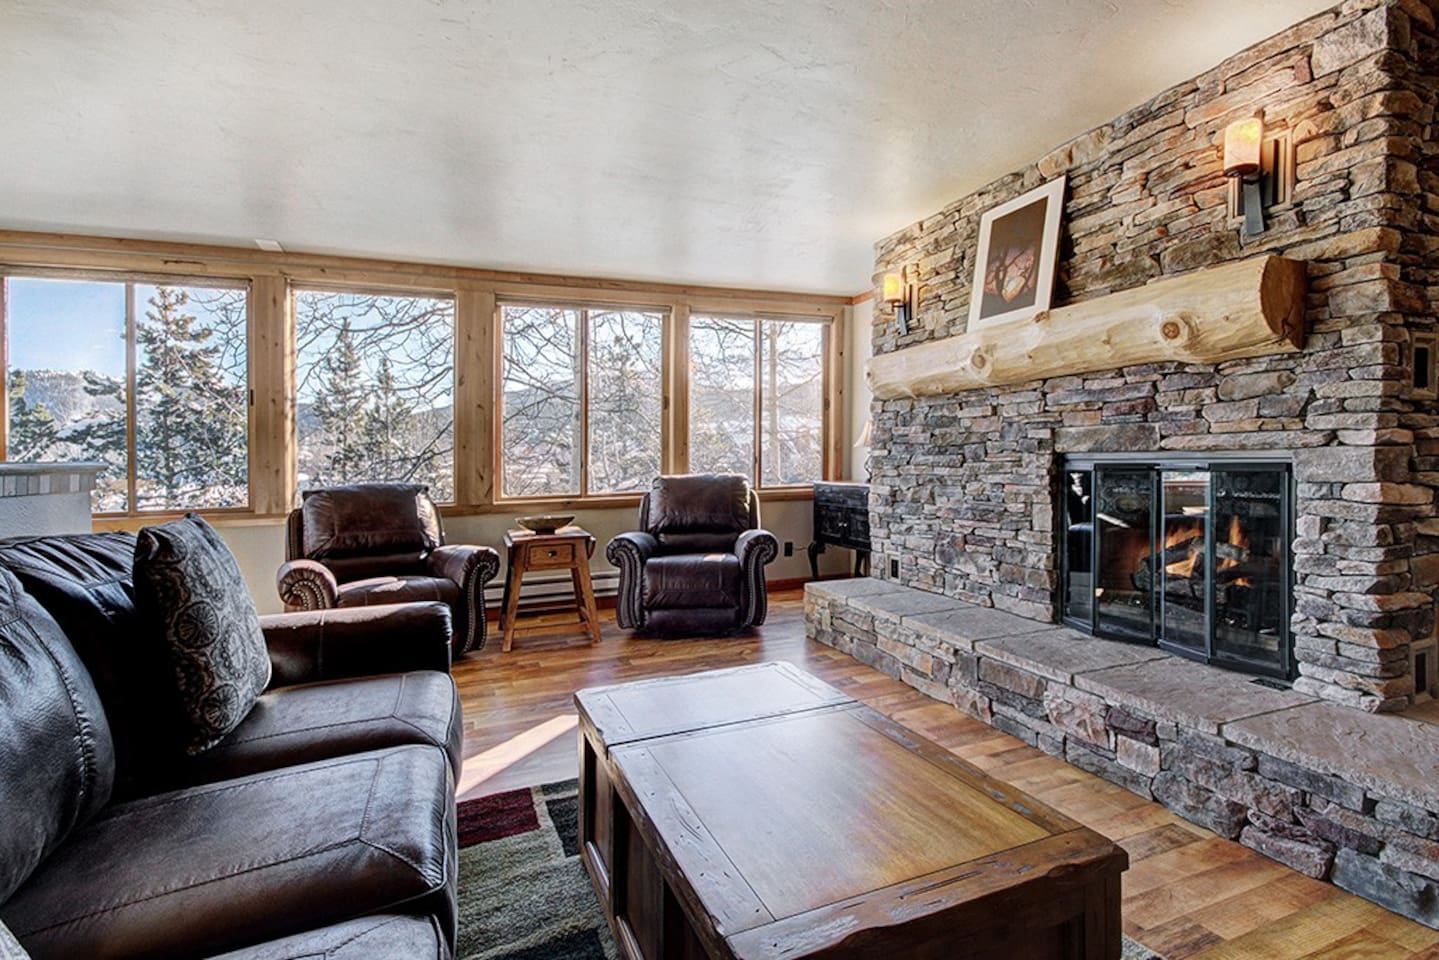 Ideal location! Just one block from Main Street and two blocks from the gondola.